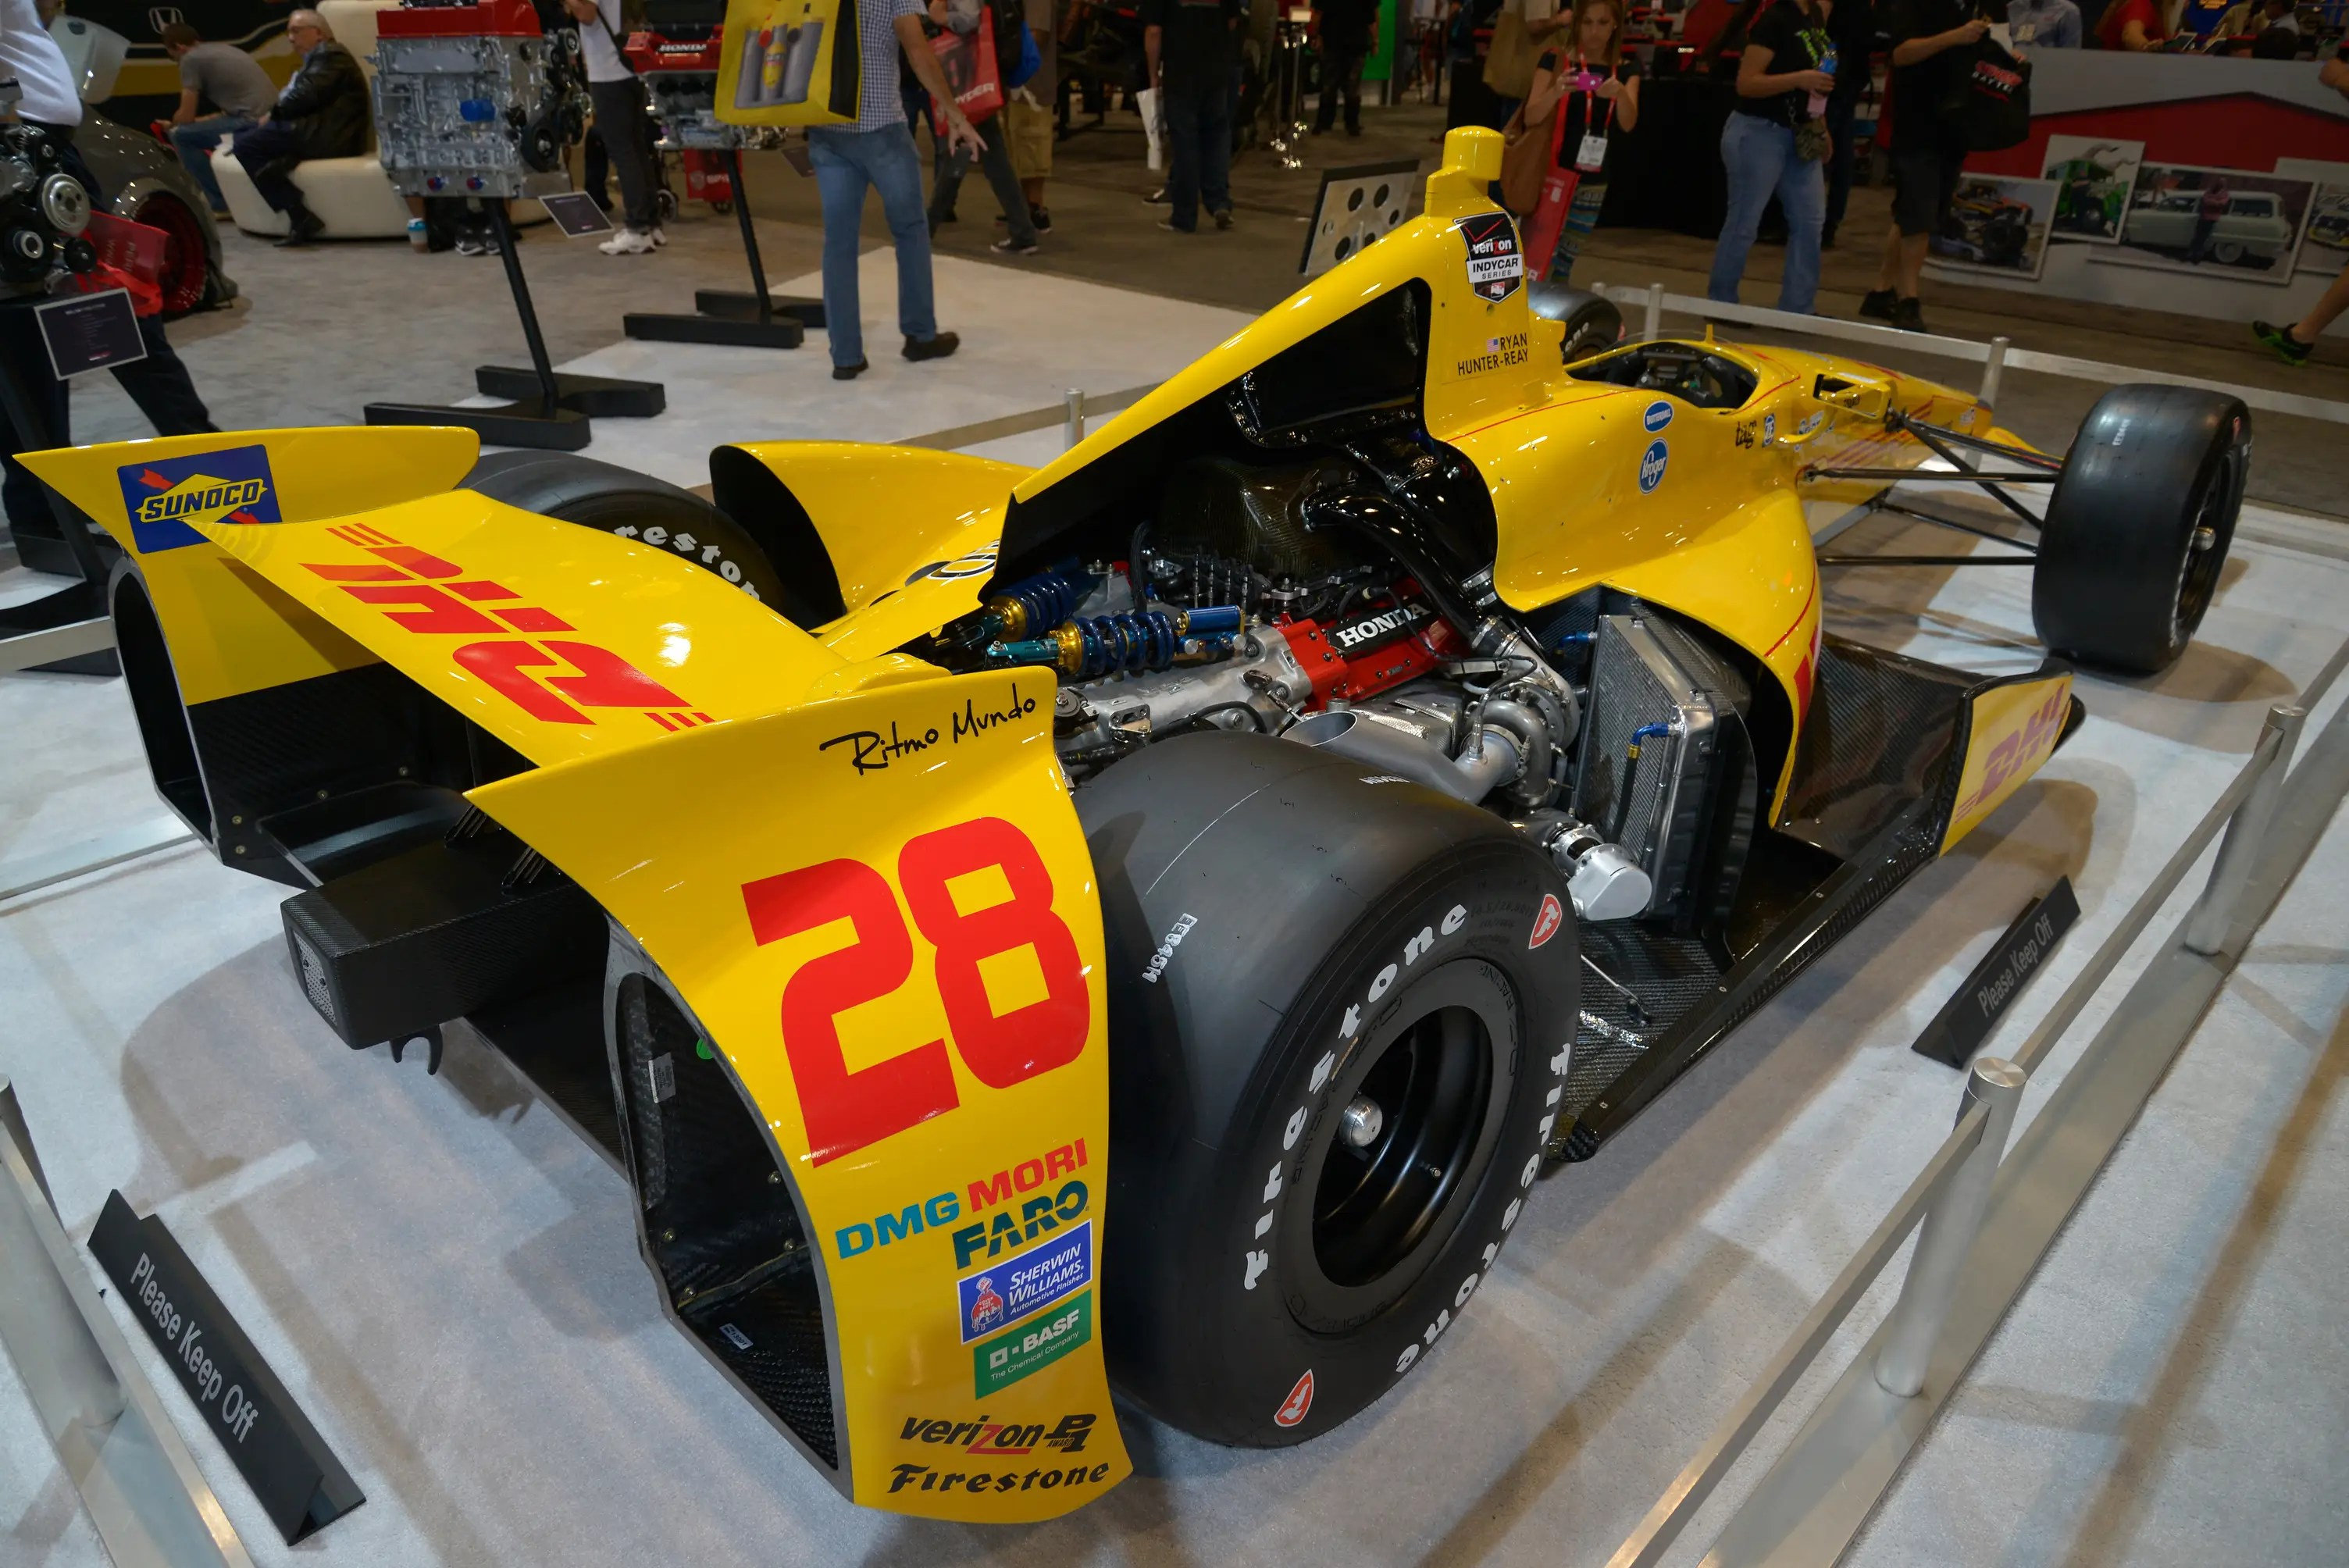 Race cars made an appearance, too. Honda showed off its Indy 500-winning race engine inside Ryan Hunter-Reay's number 28 Dallara.